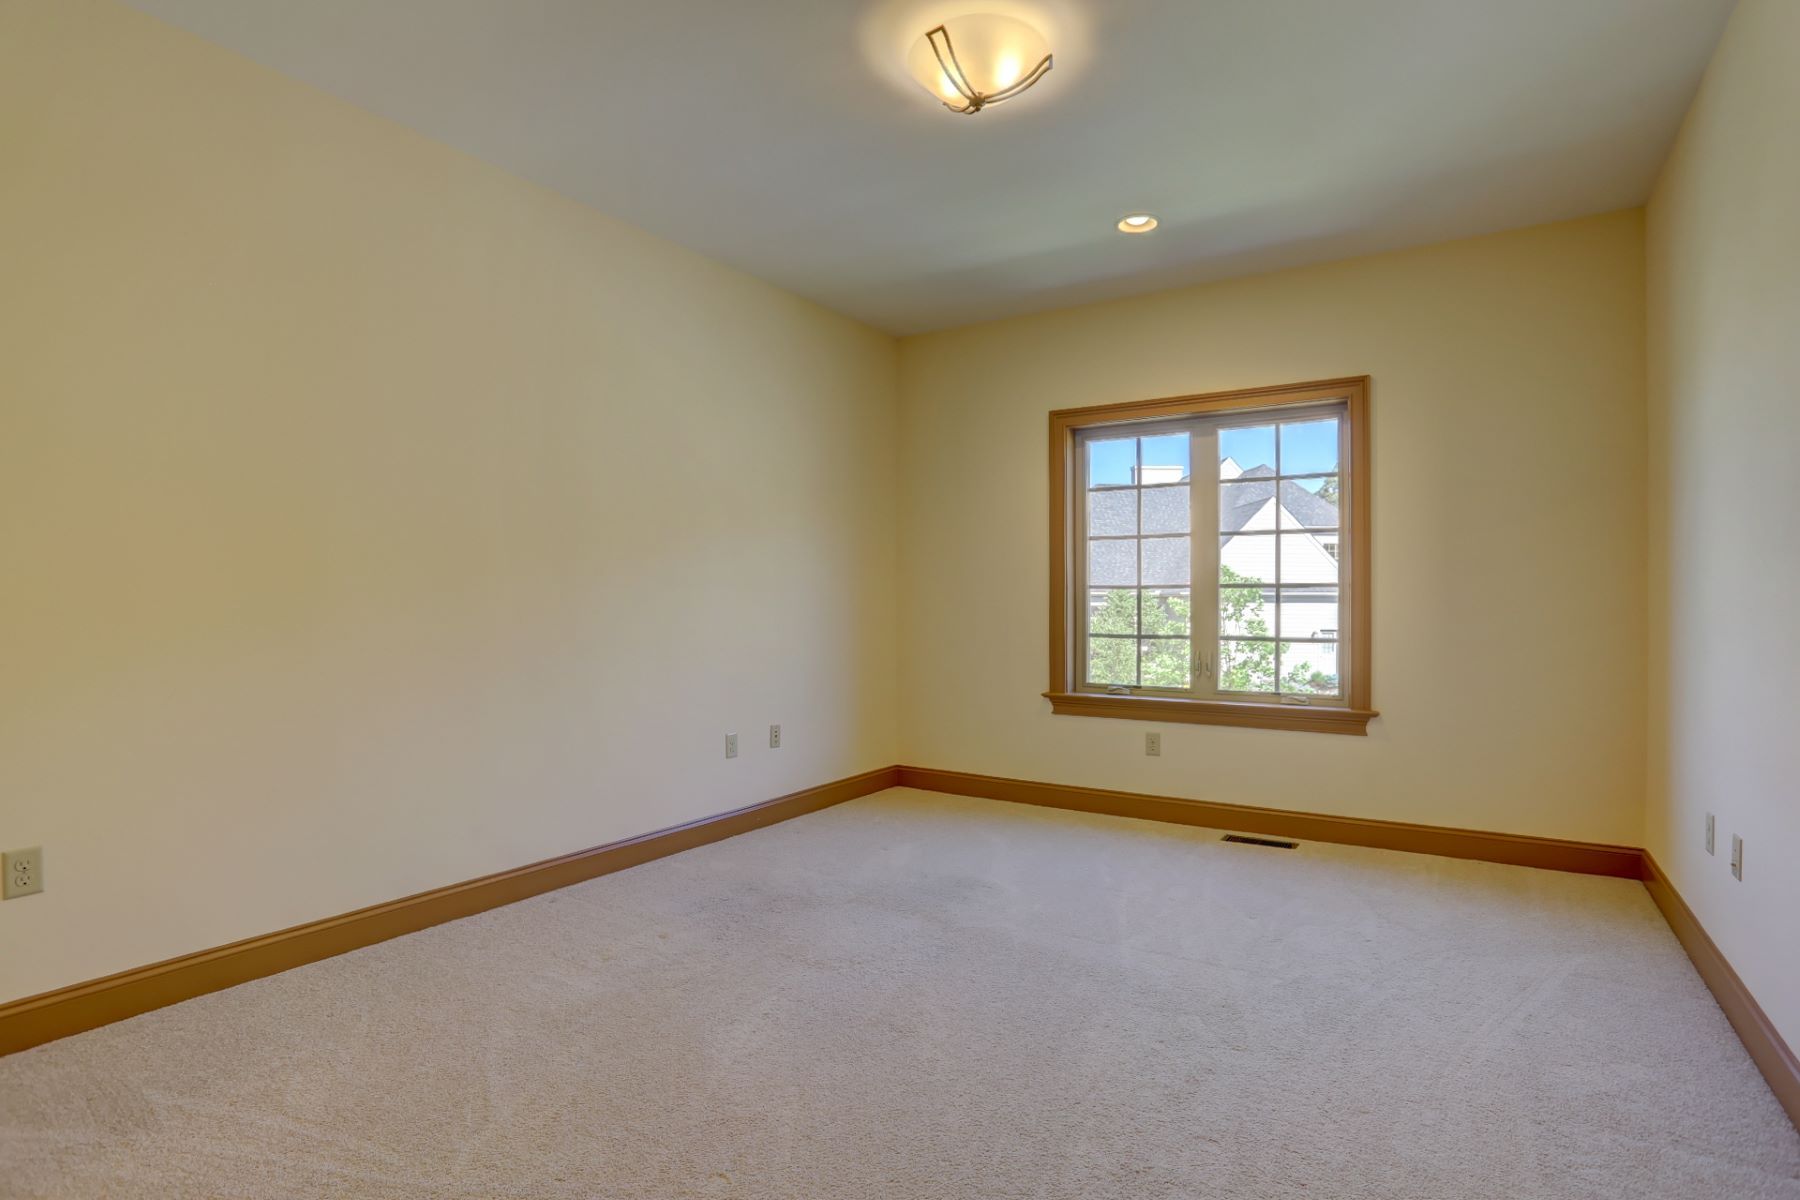 Additional photo for property listing at 363 Spring Haven Drive  Lancaster, Pennsylvania 17601 United States